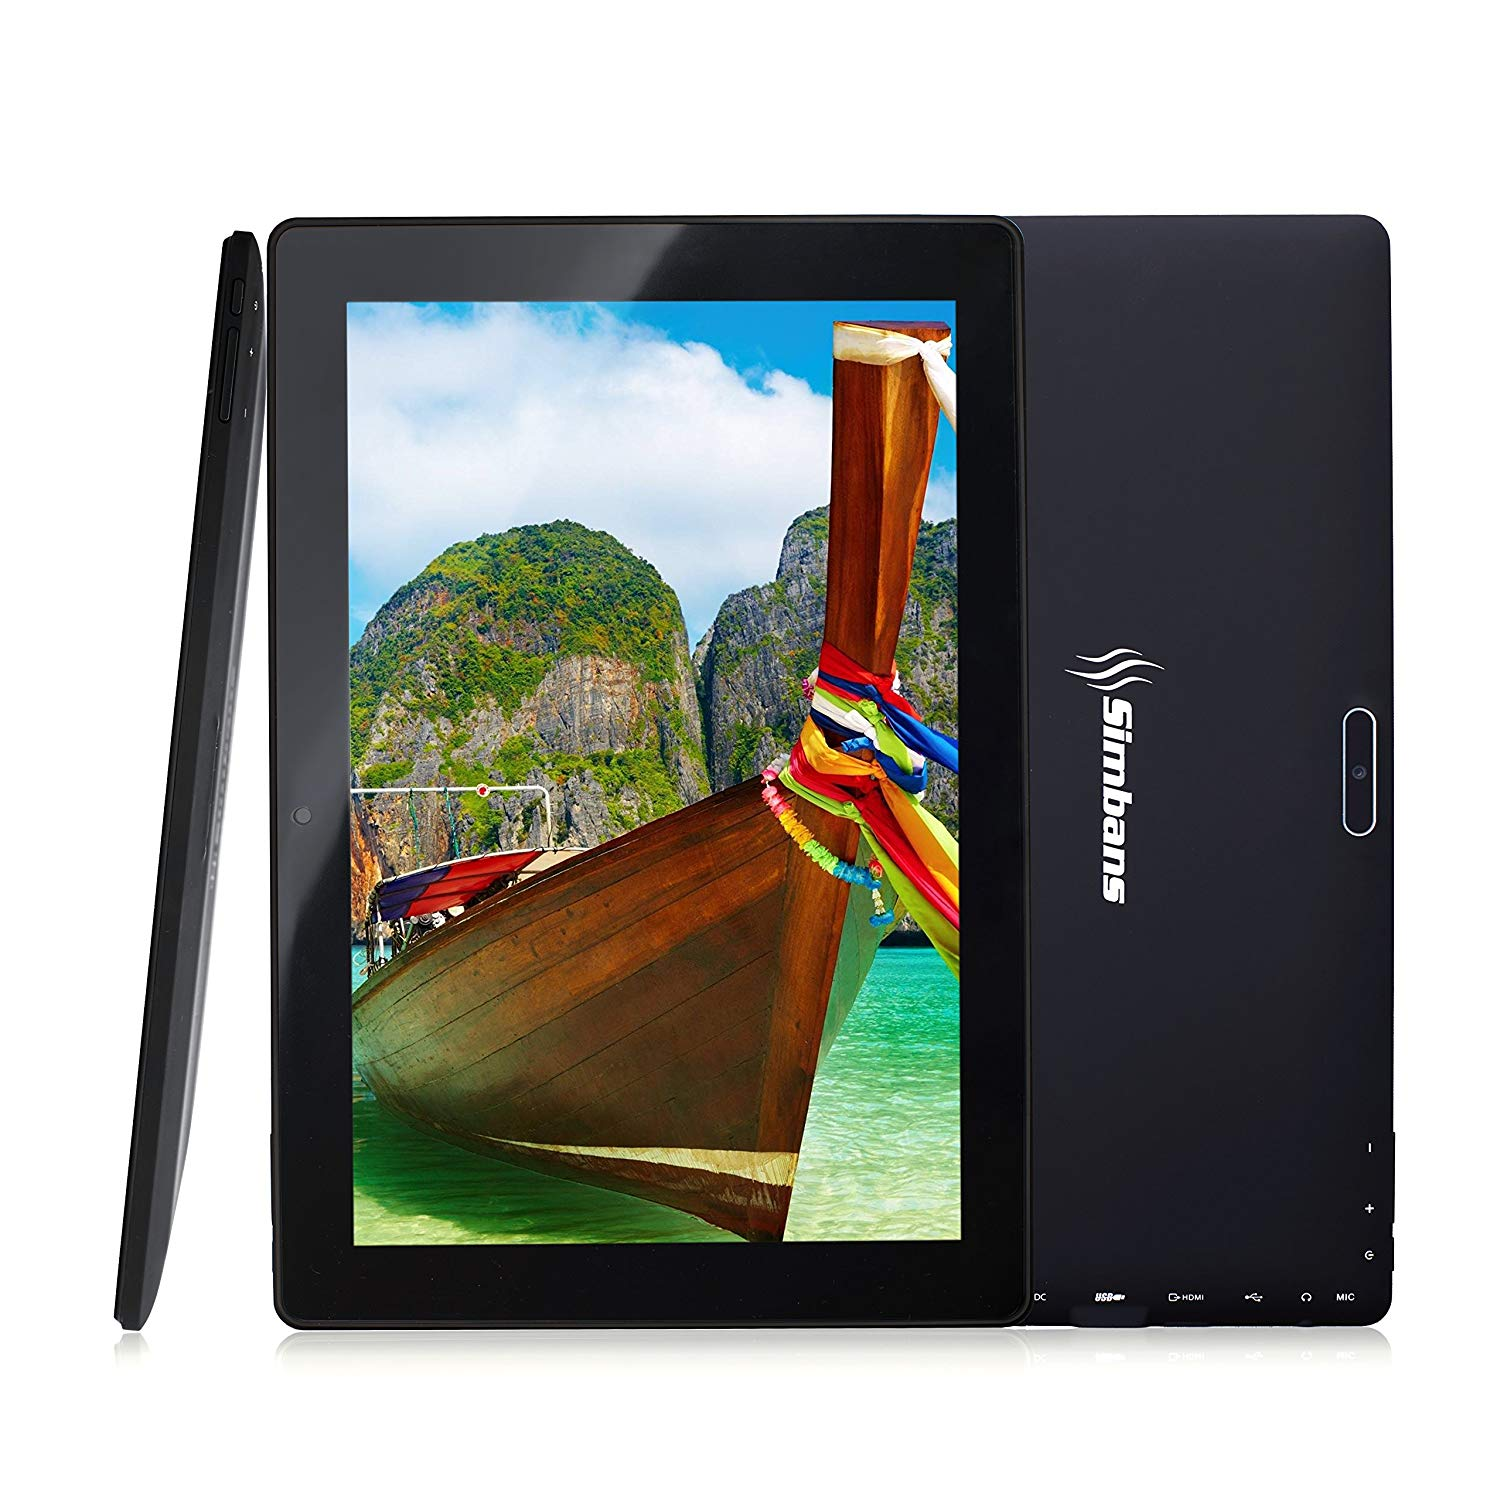 Simbans TangoTab 10 Inch Tablet | 2GB RAM, 32GB Disk, Android 7.0 Nougat | New 2018 Model | GPS, WiFi, USB, HDMI, Bluetooth | IPS screen, Quad Core CPU, 2+5 MP Camera Computer PC